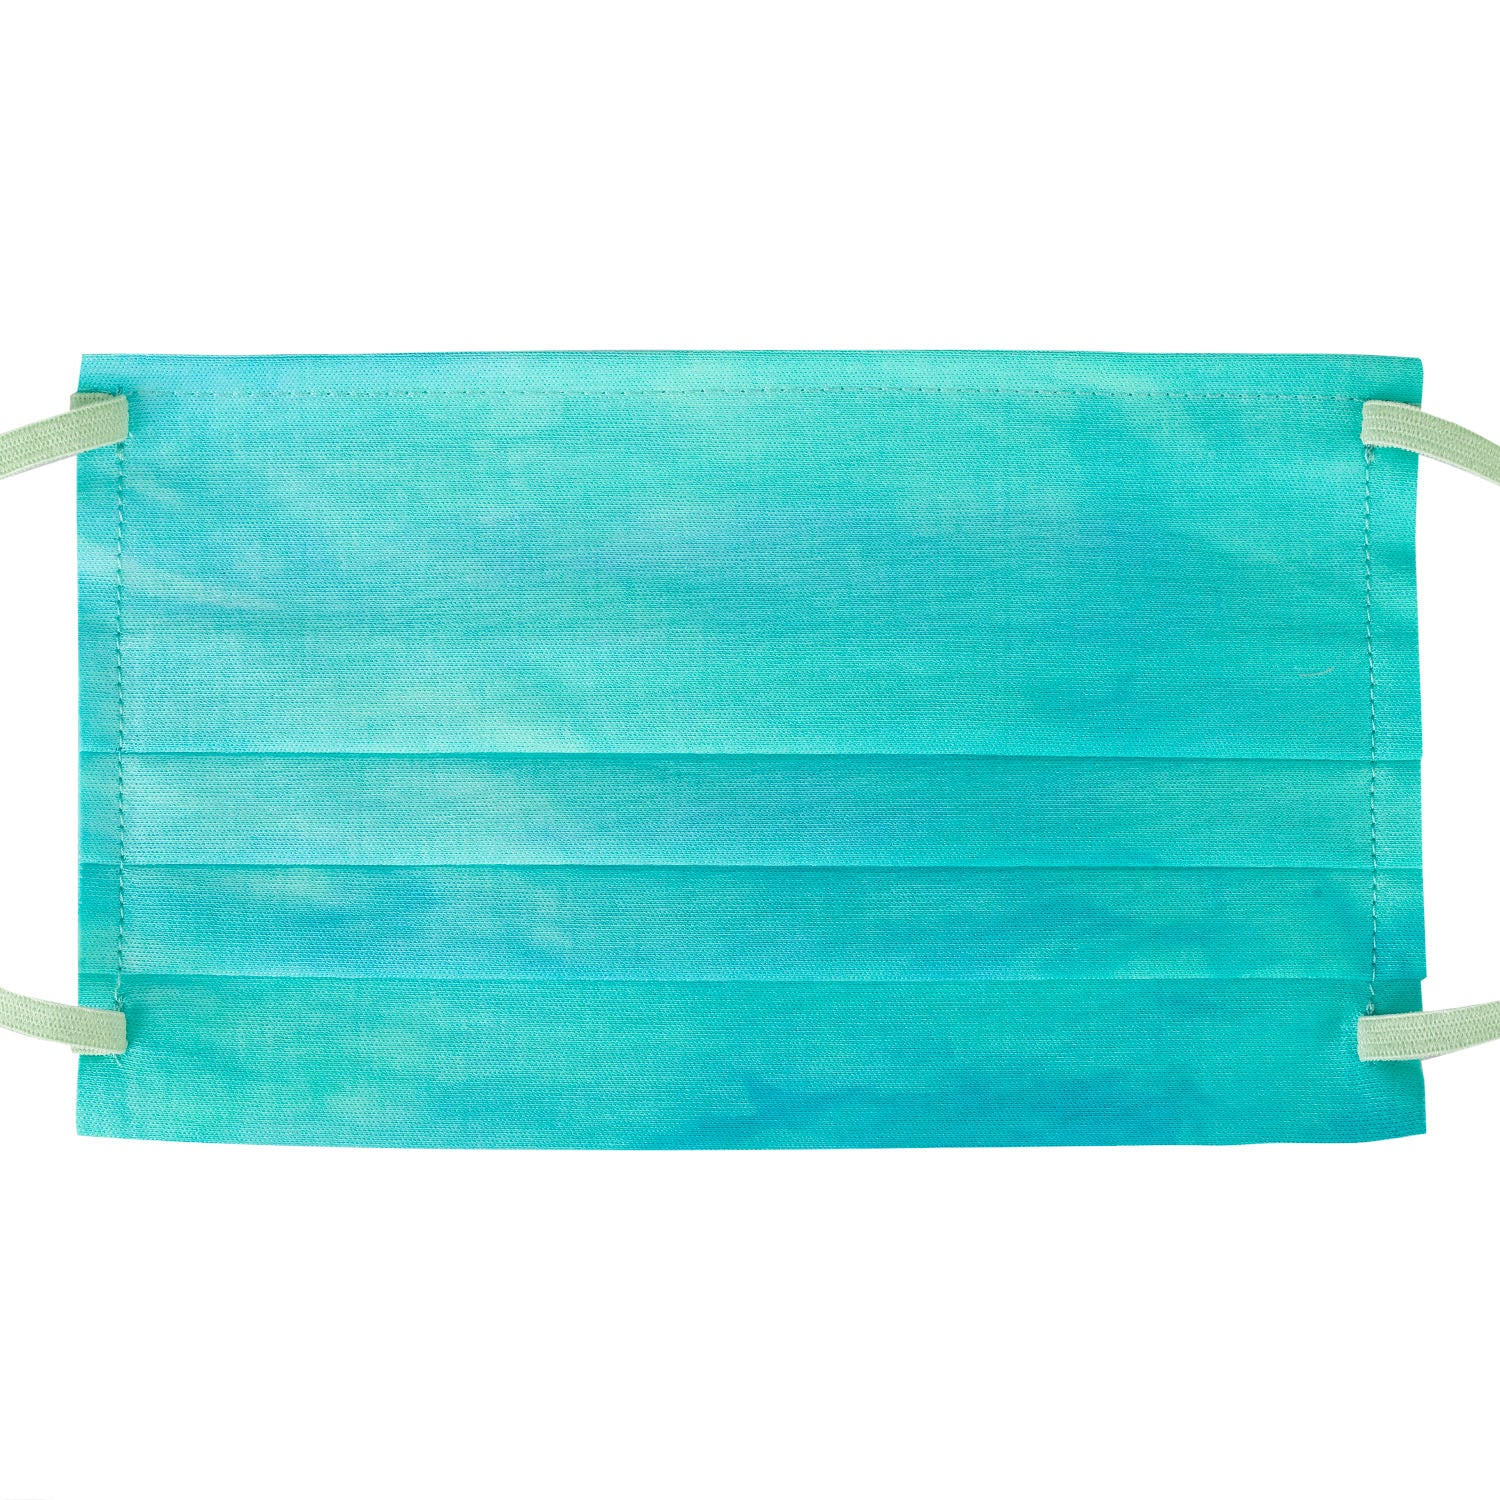 Tie-dye in turquoise blue + green, with light green elastics